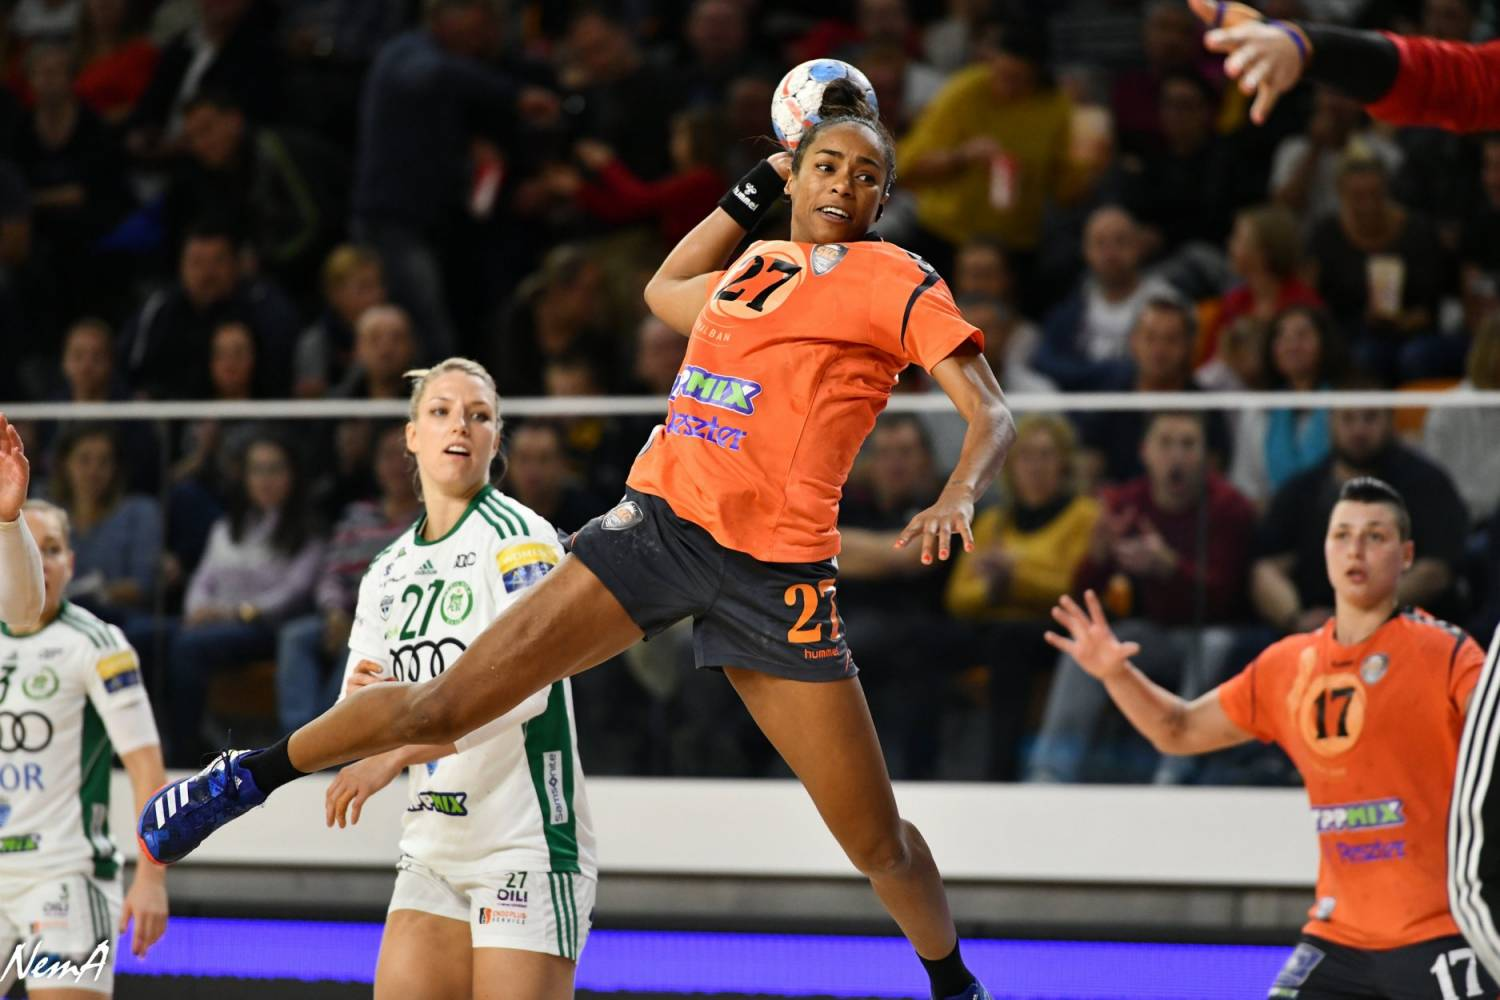 Estelle Nze Minko leaves at the end of the season